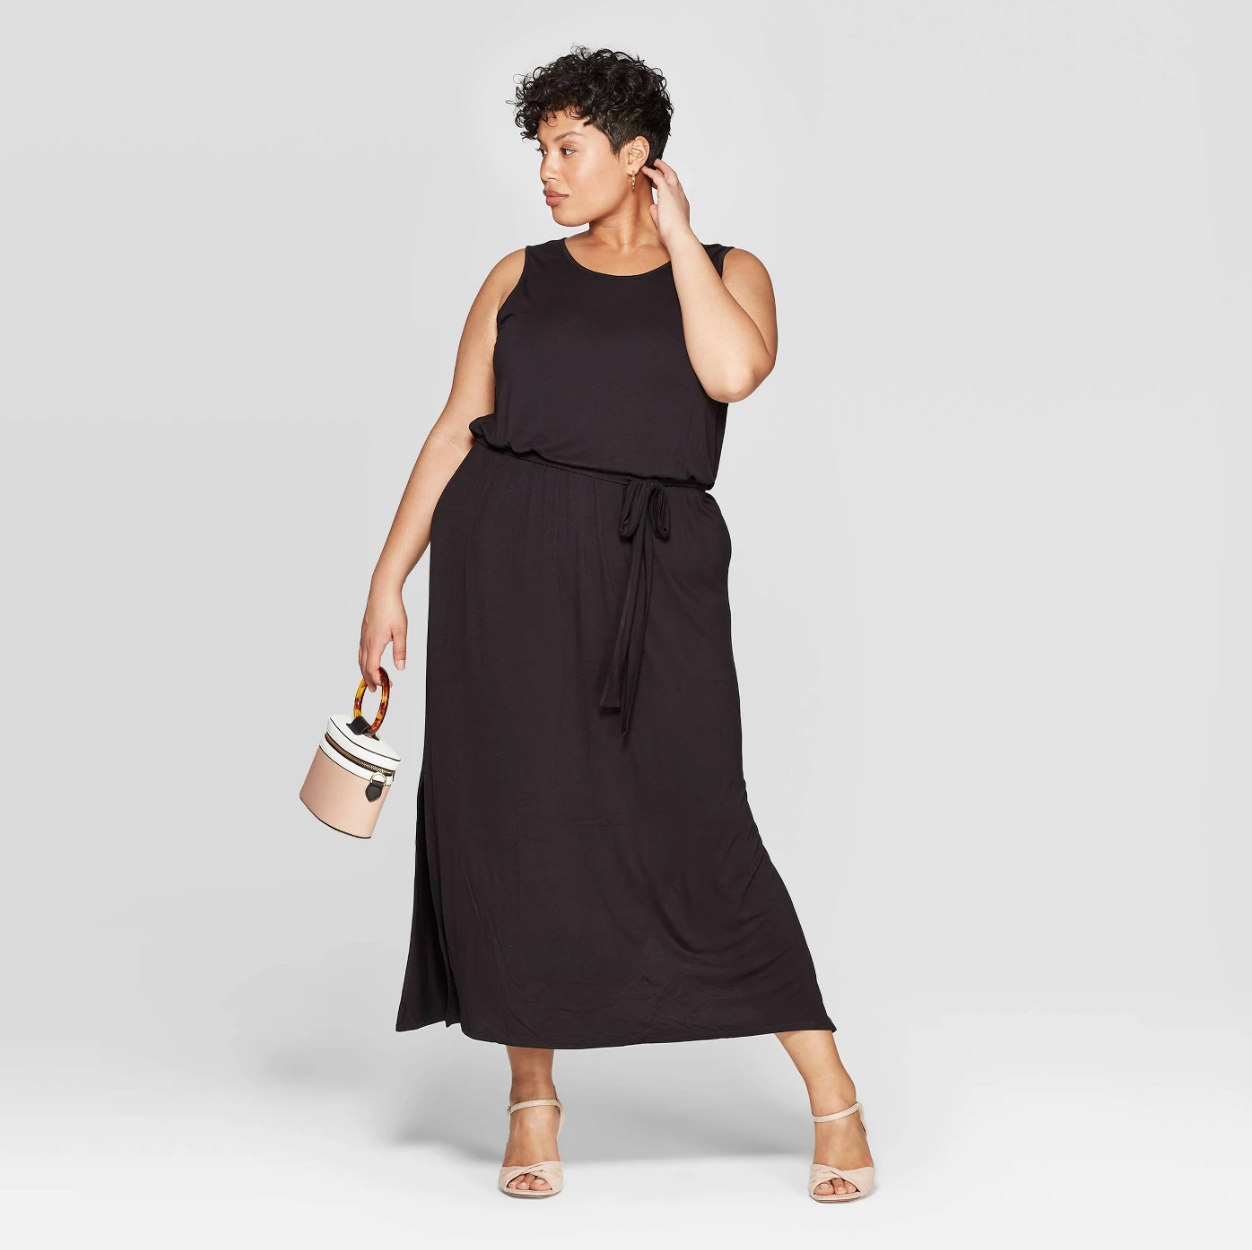 Plus Size Maxi Dresses At Target - raveitsafe